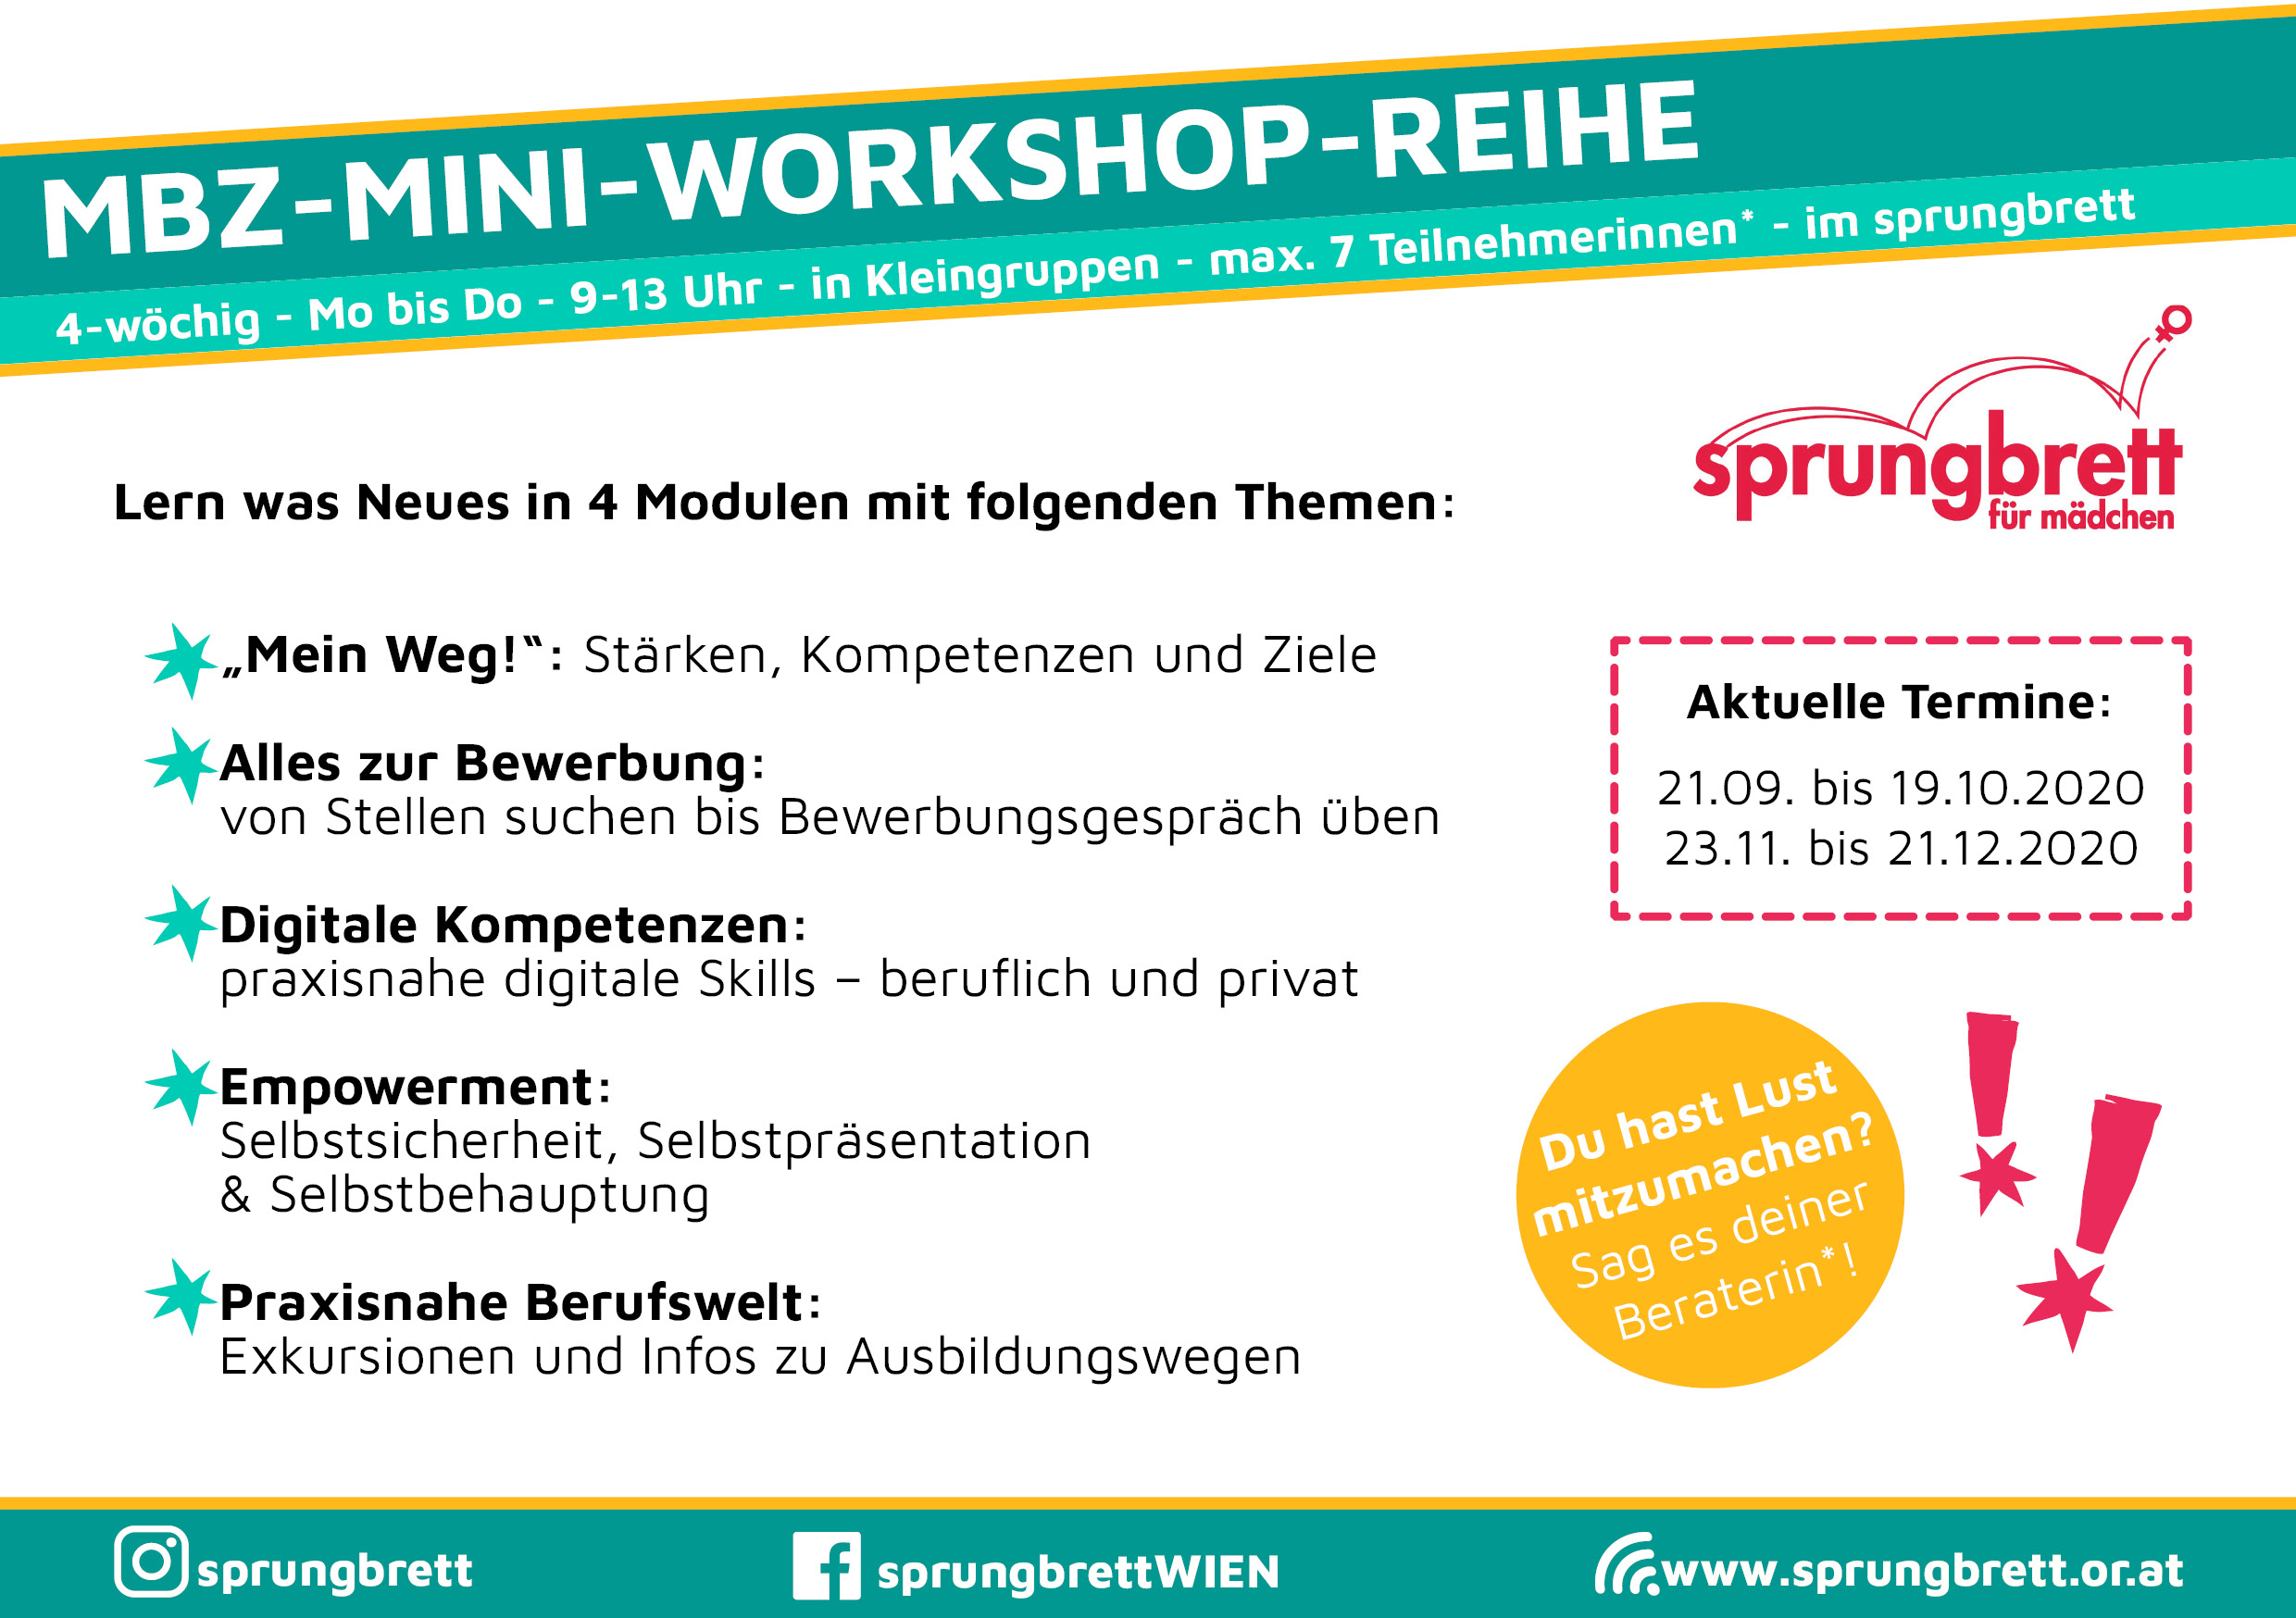 Termine Workshopreihe